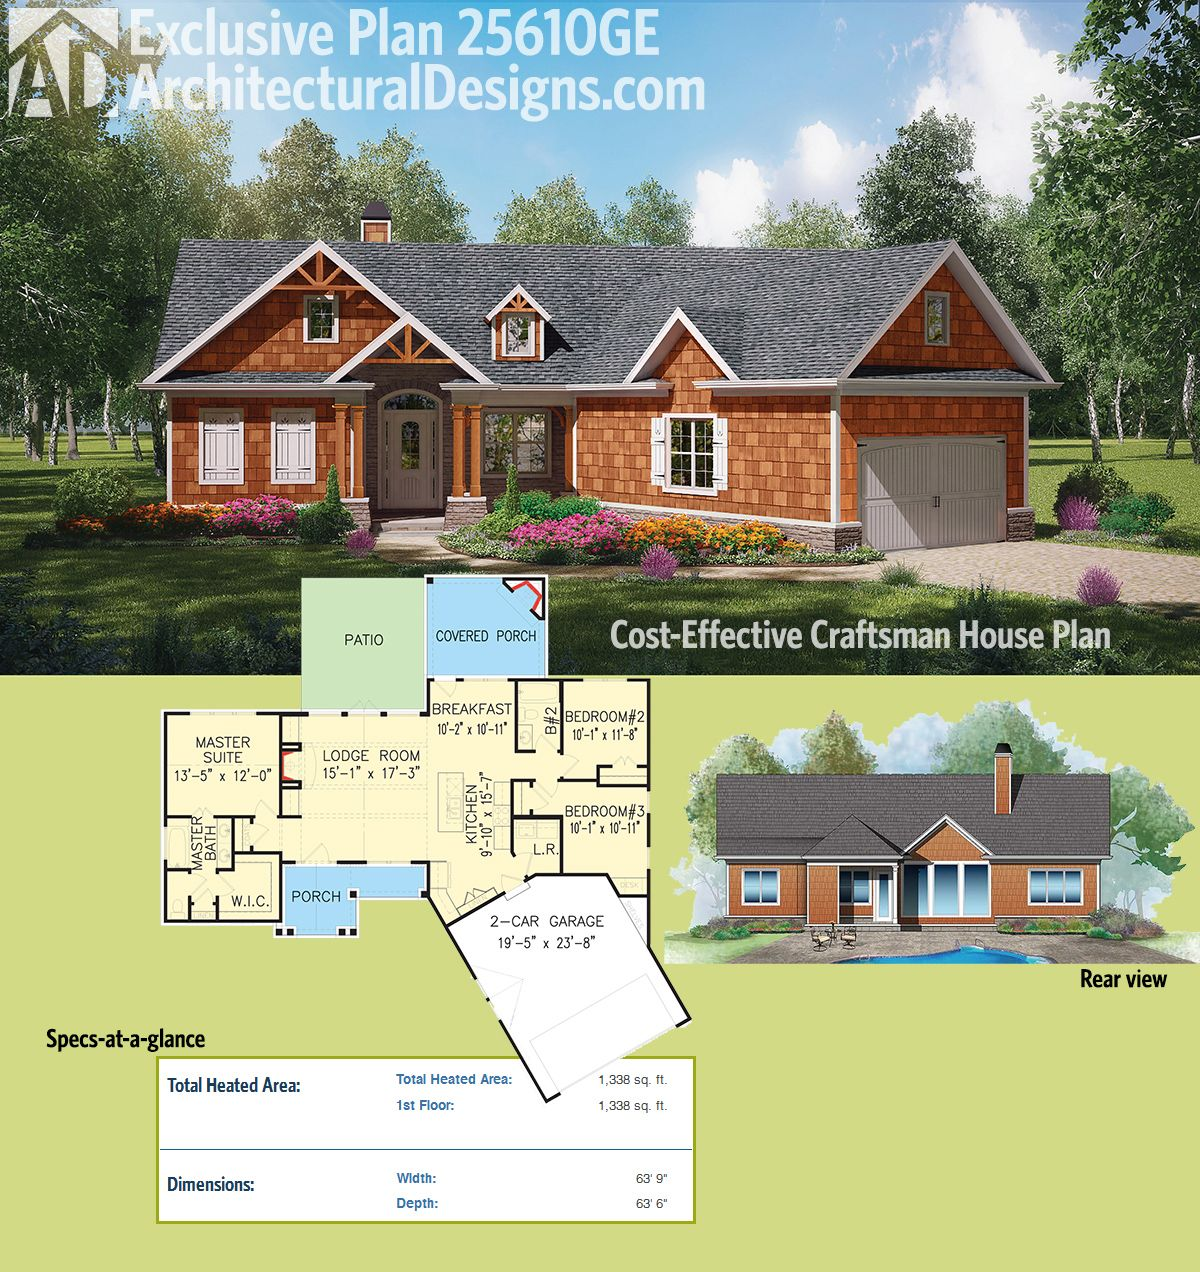 Plan 25610ge cost effective craftsman house plan for Cost to build craftsman home